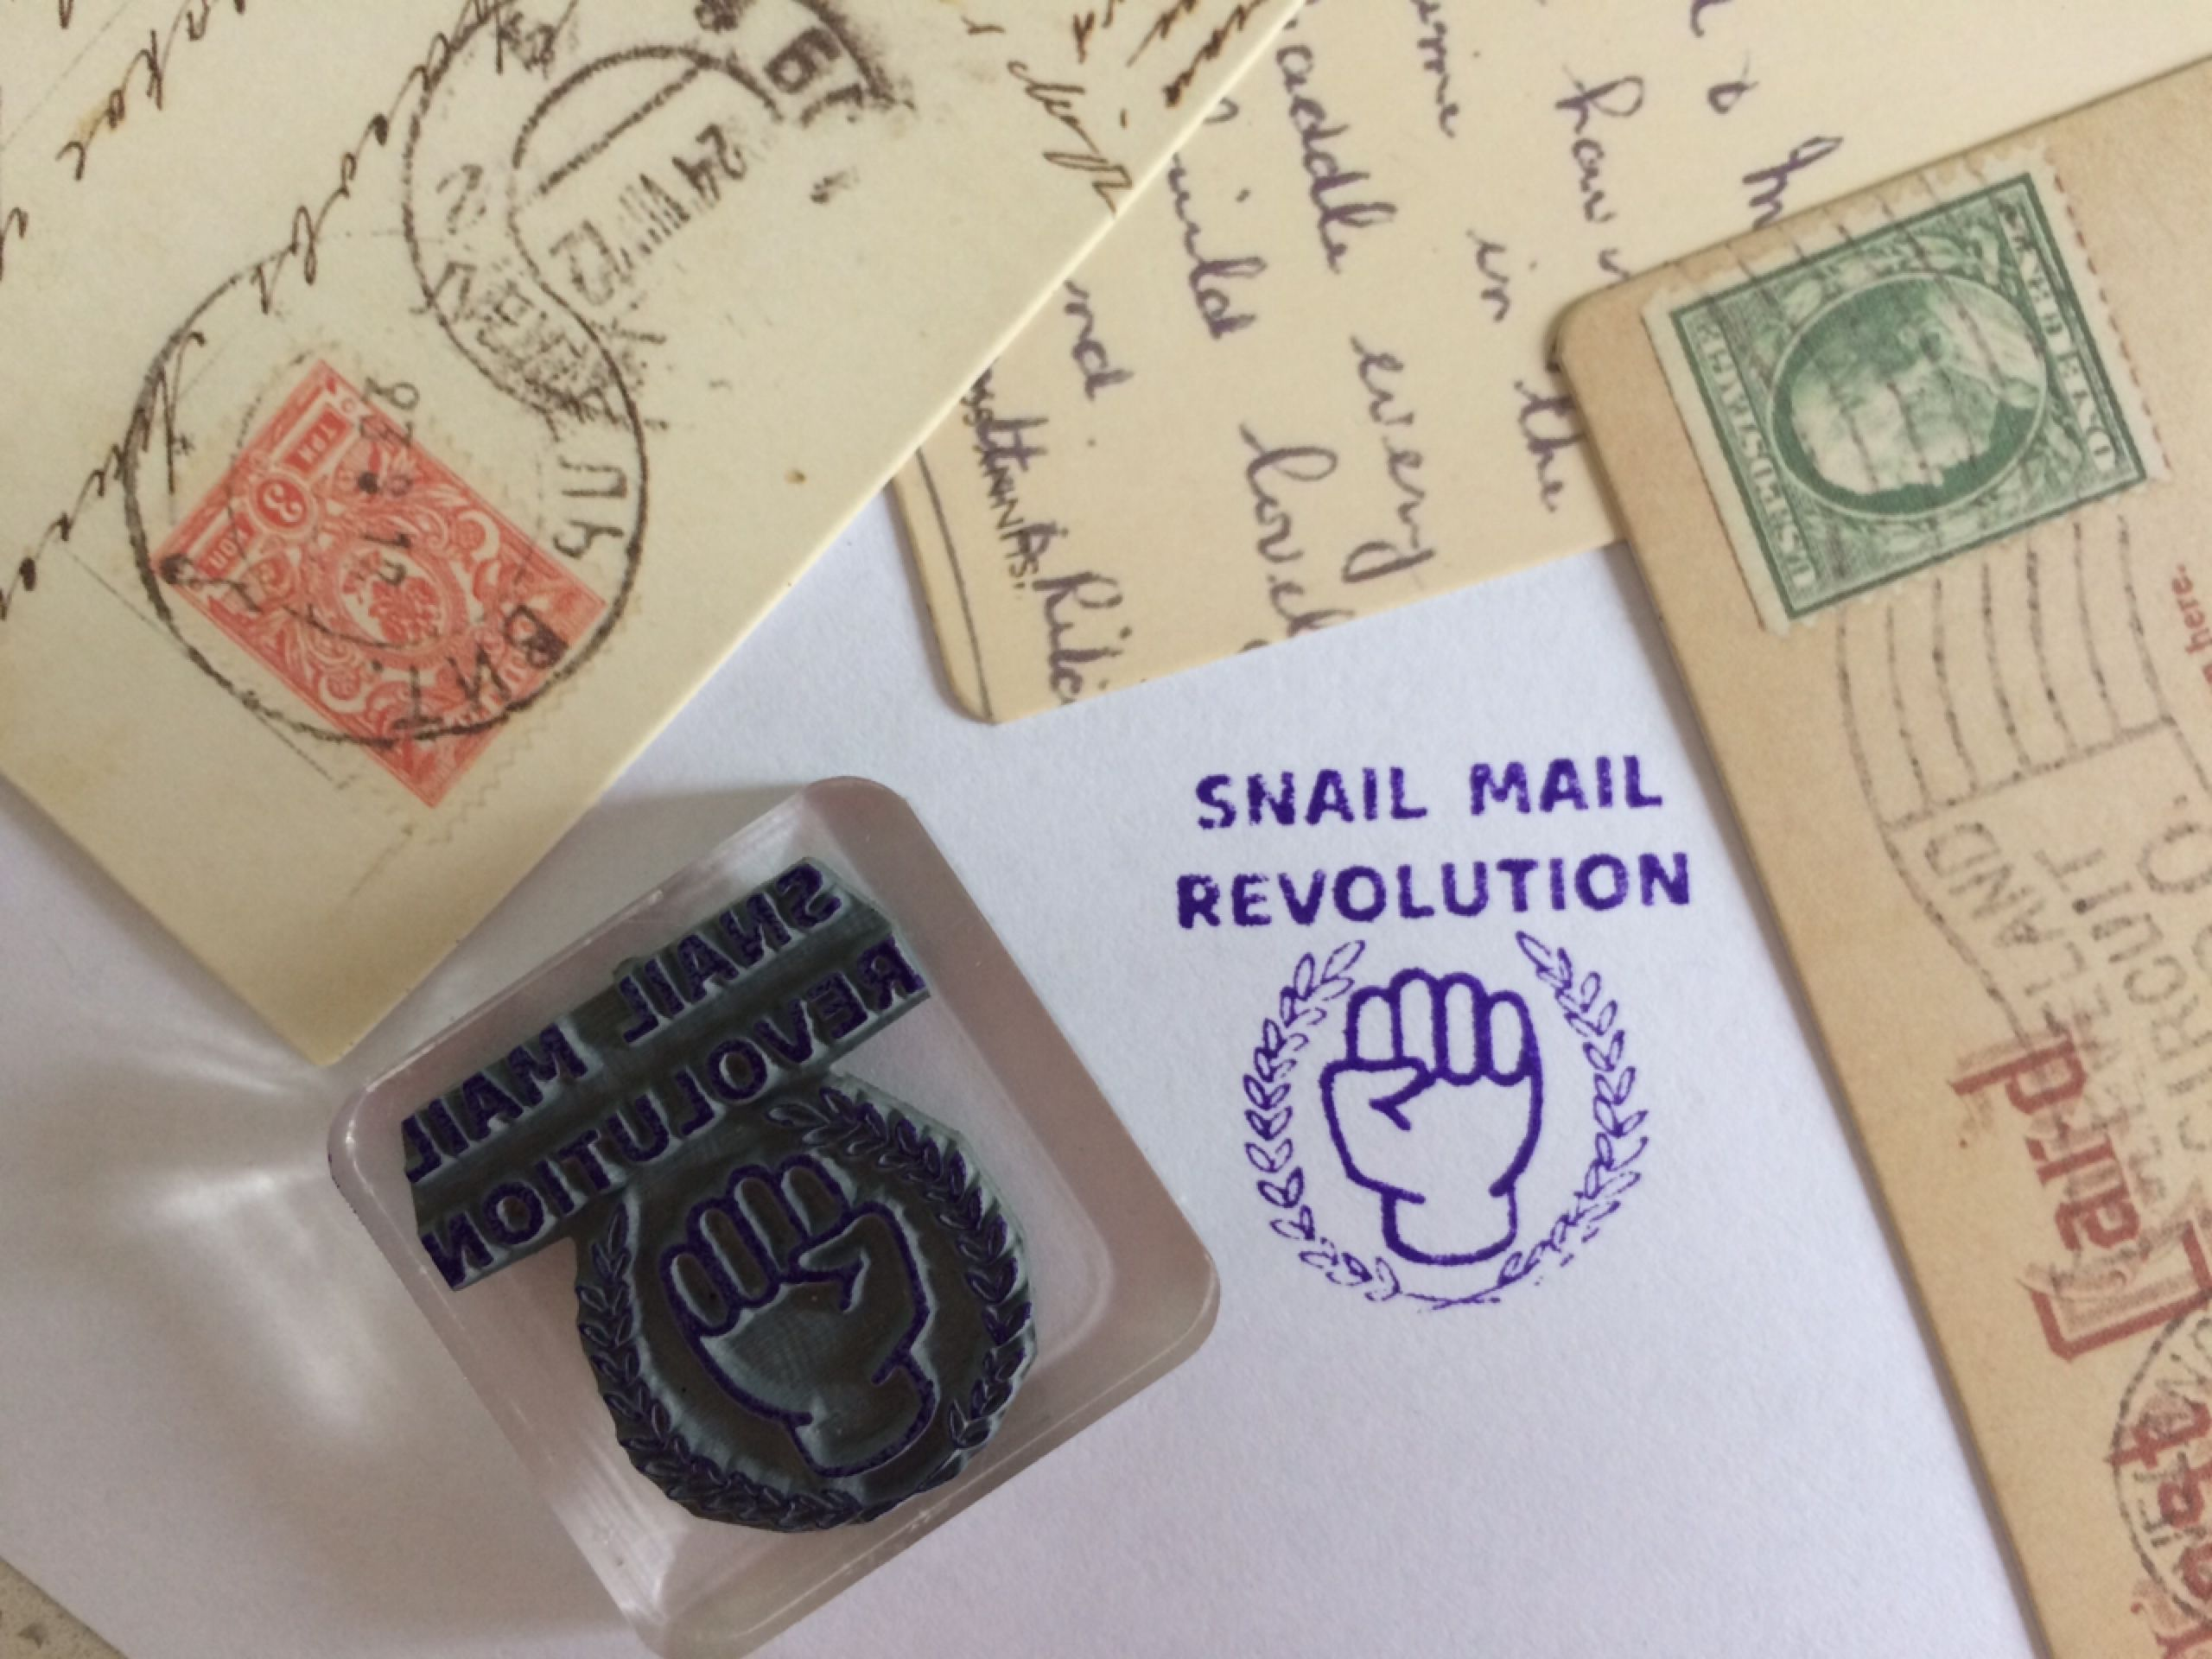 Rubber stamps for crafting - Find This Pin And More On Craft Rubber Stamps Happy Mail Pen Pals Postcrossing Letters Mailart Postcards Envelopes Cute Etsy Shop